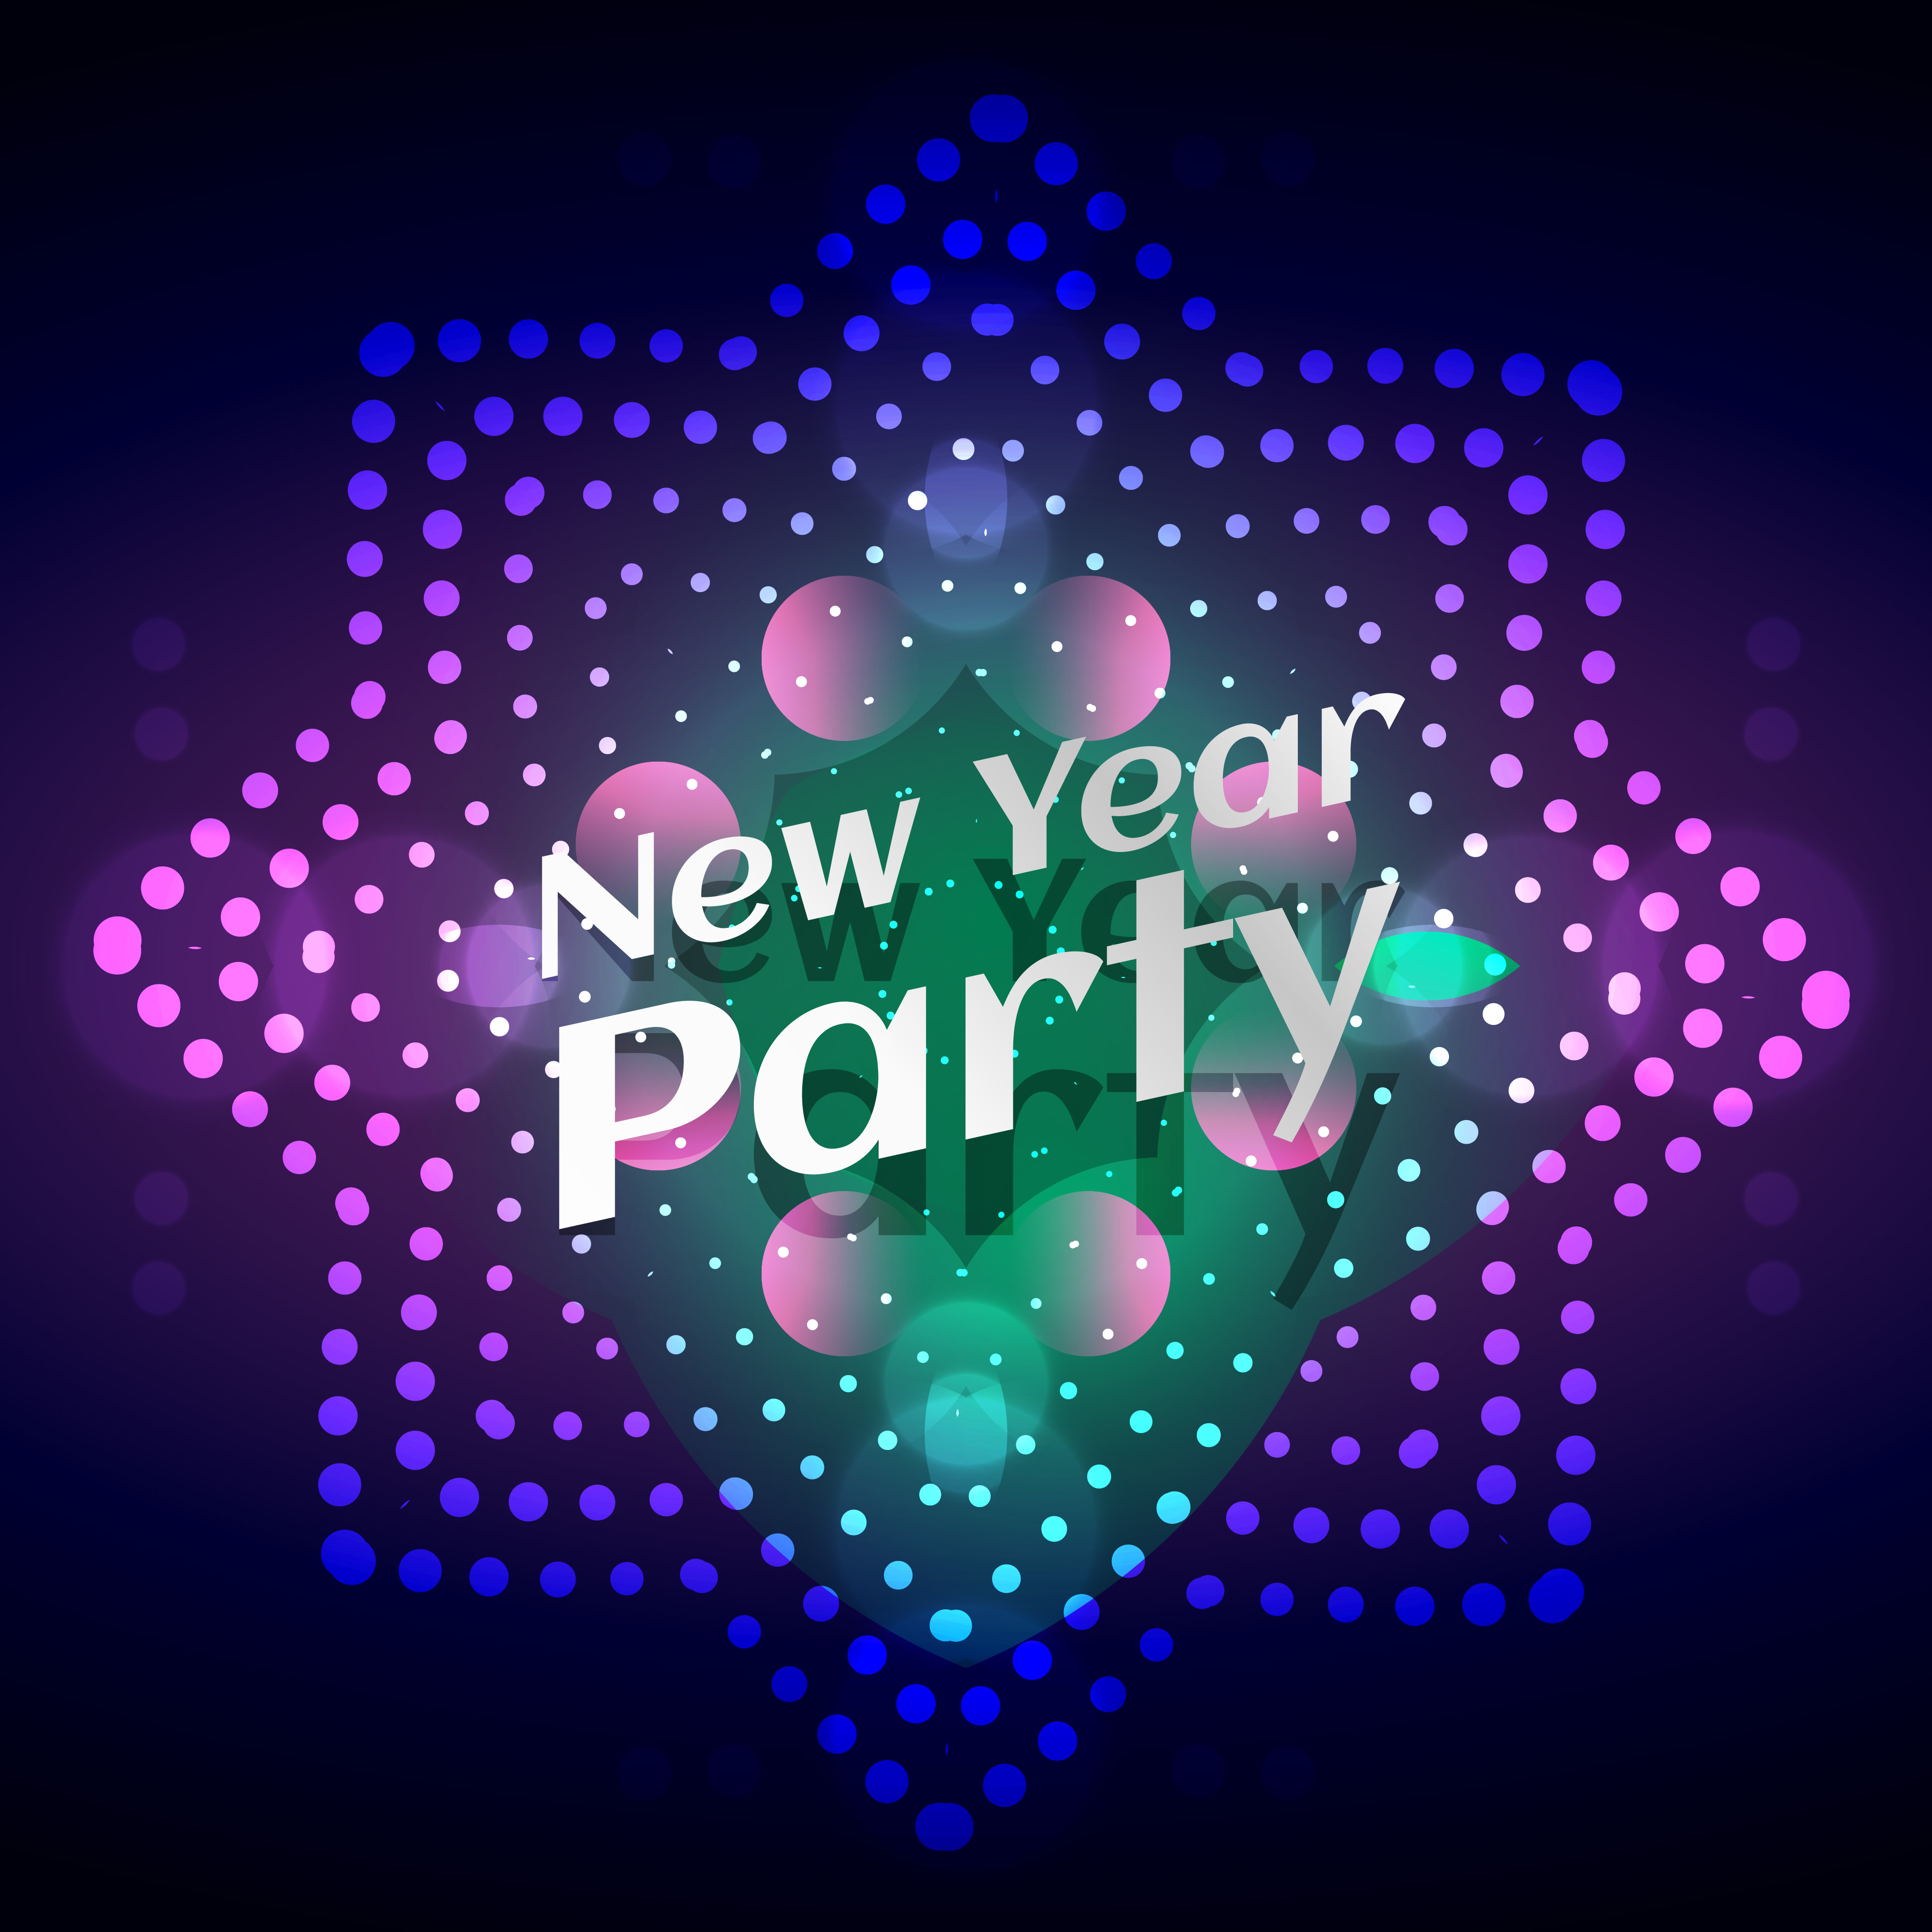 Glow Party Free Vector Art 14221 Free Downloads